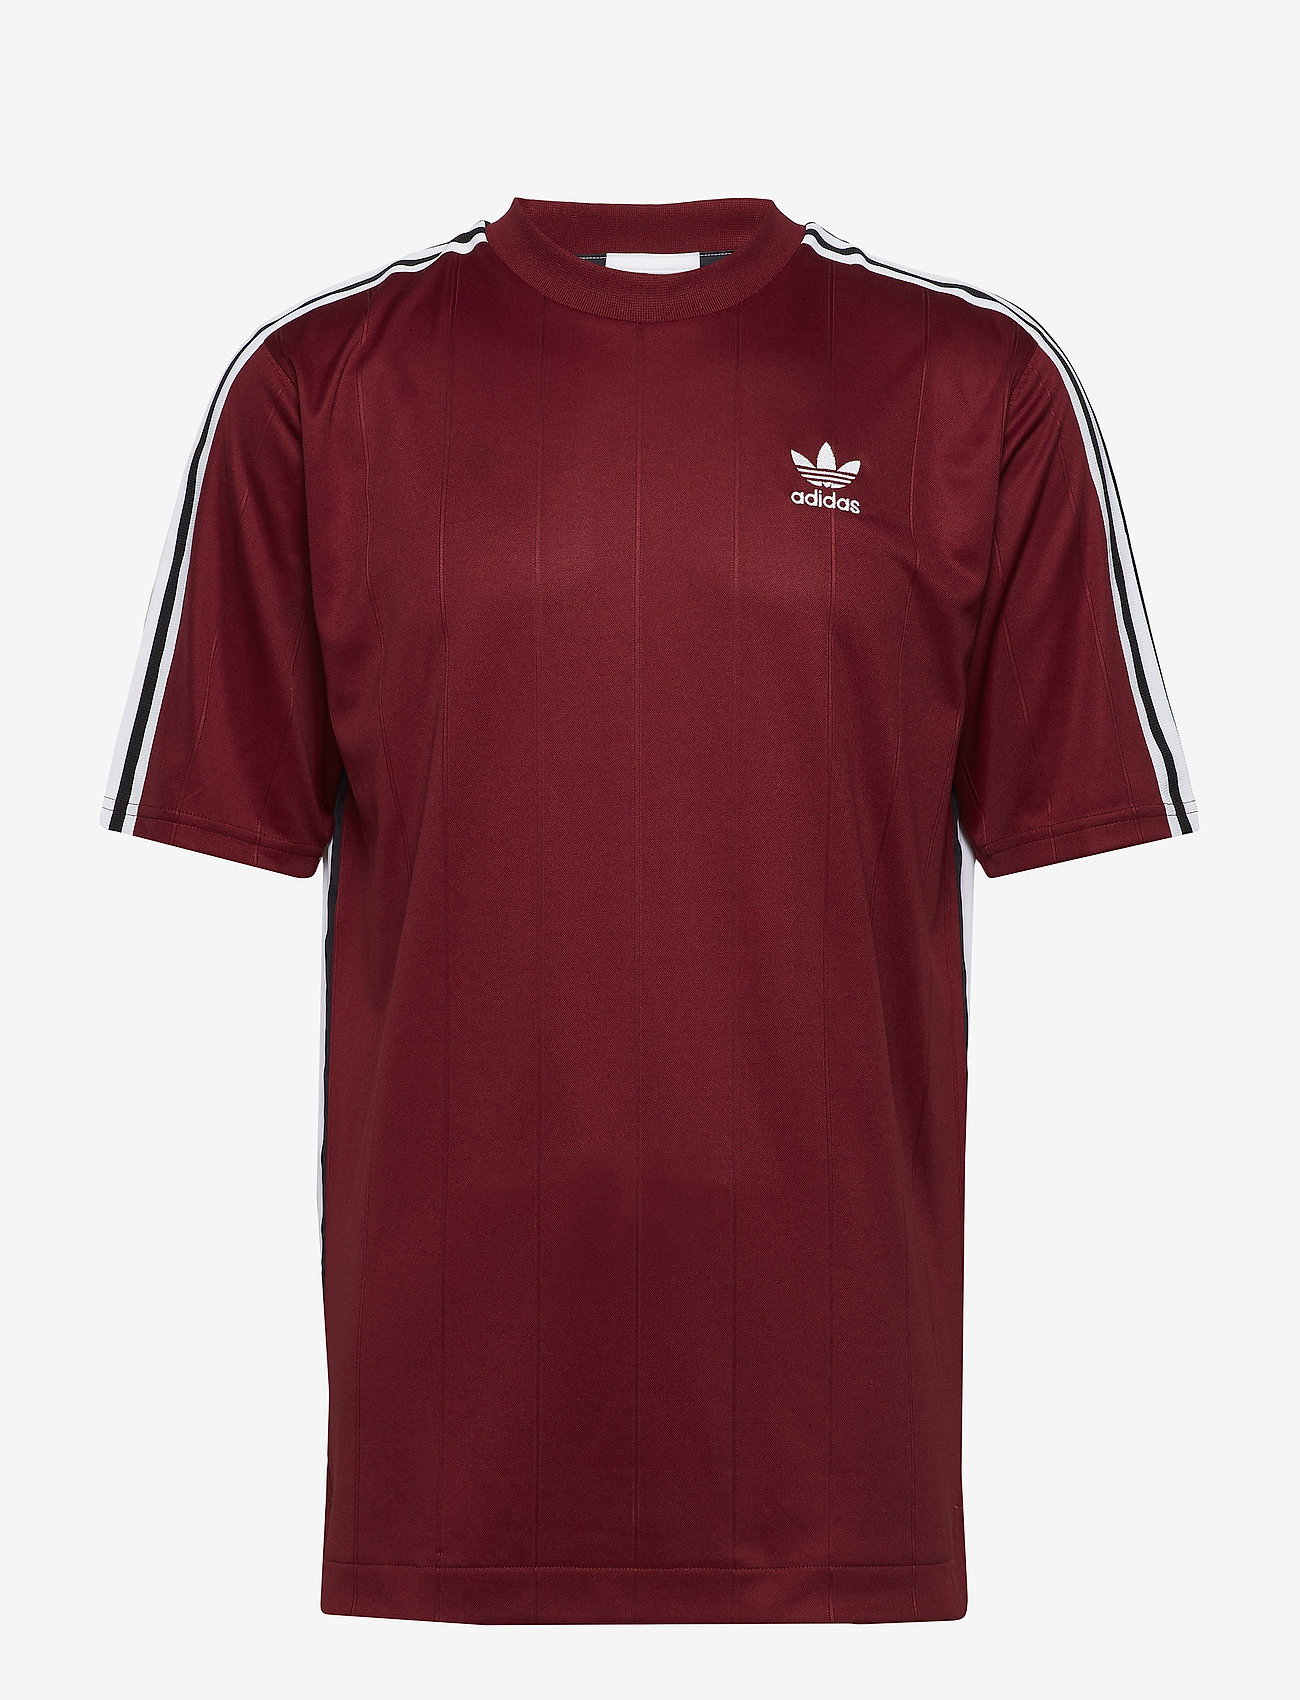 adidas Originals - B SIDE JERSEY 3 - sports tops - nobmar